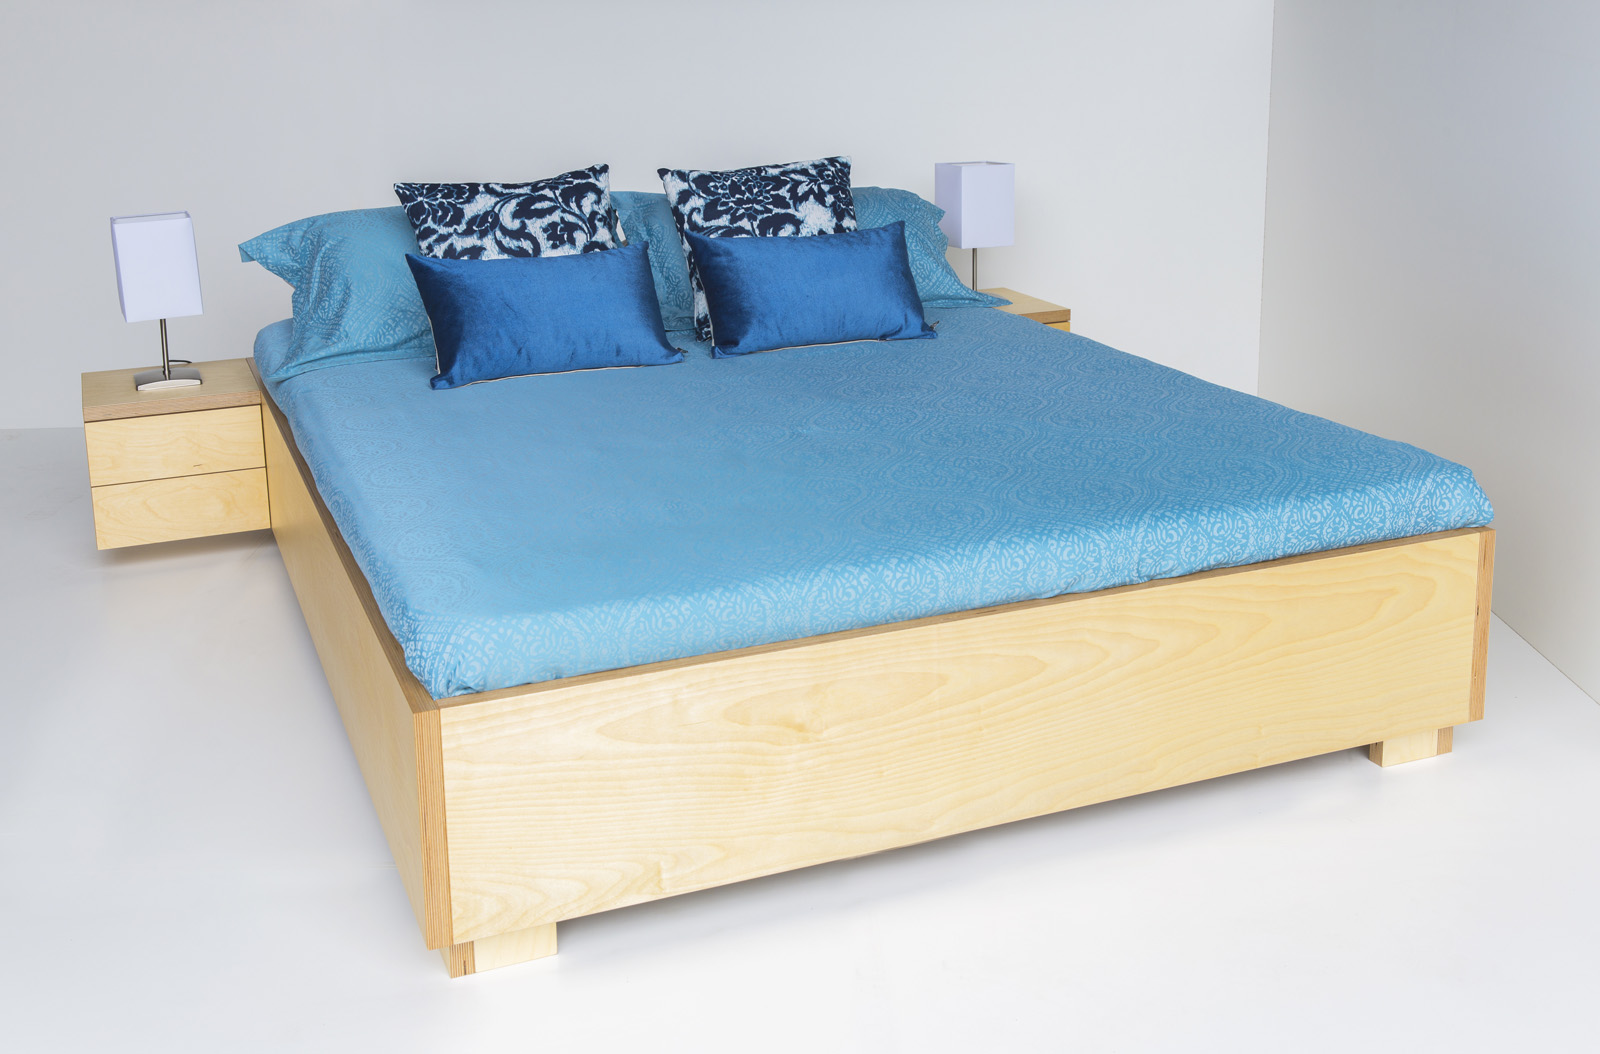 plywood bedroom furniture. Plywood furniture  bed locally made stools design Swiss Woodcraft swiss retail